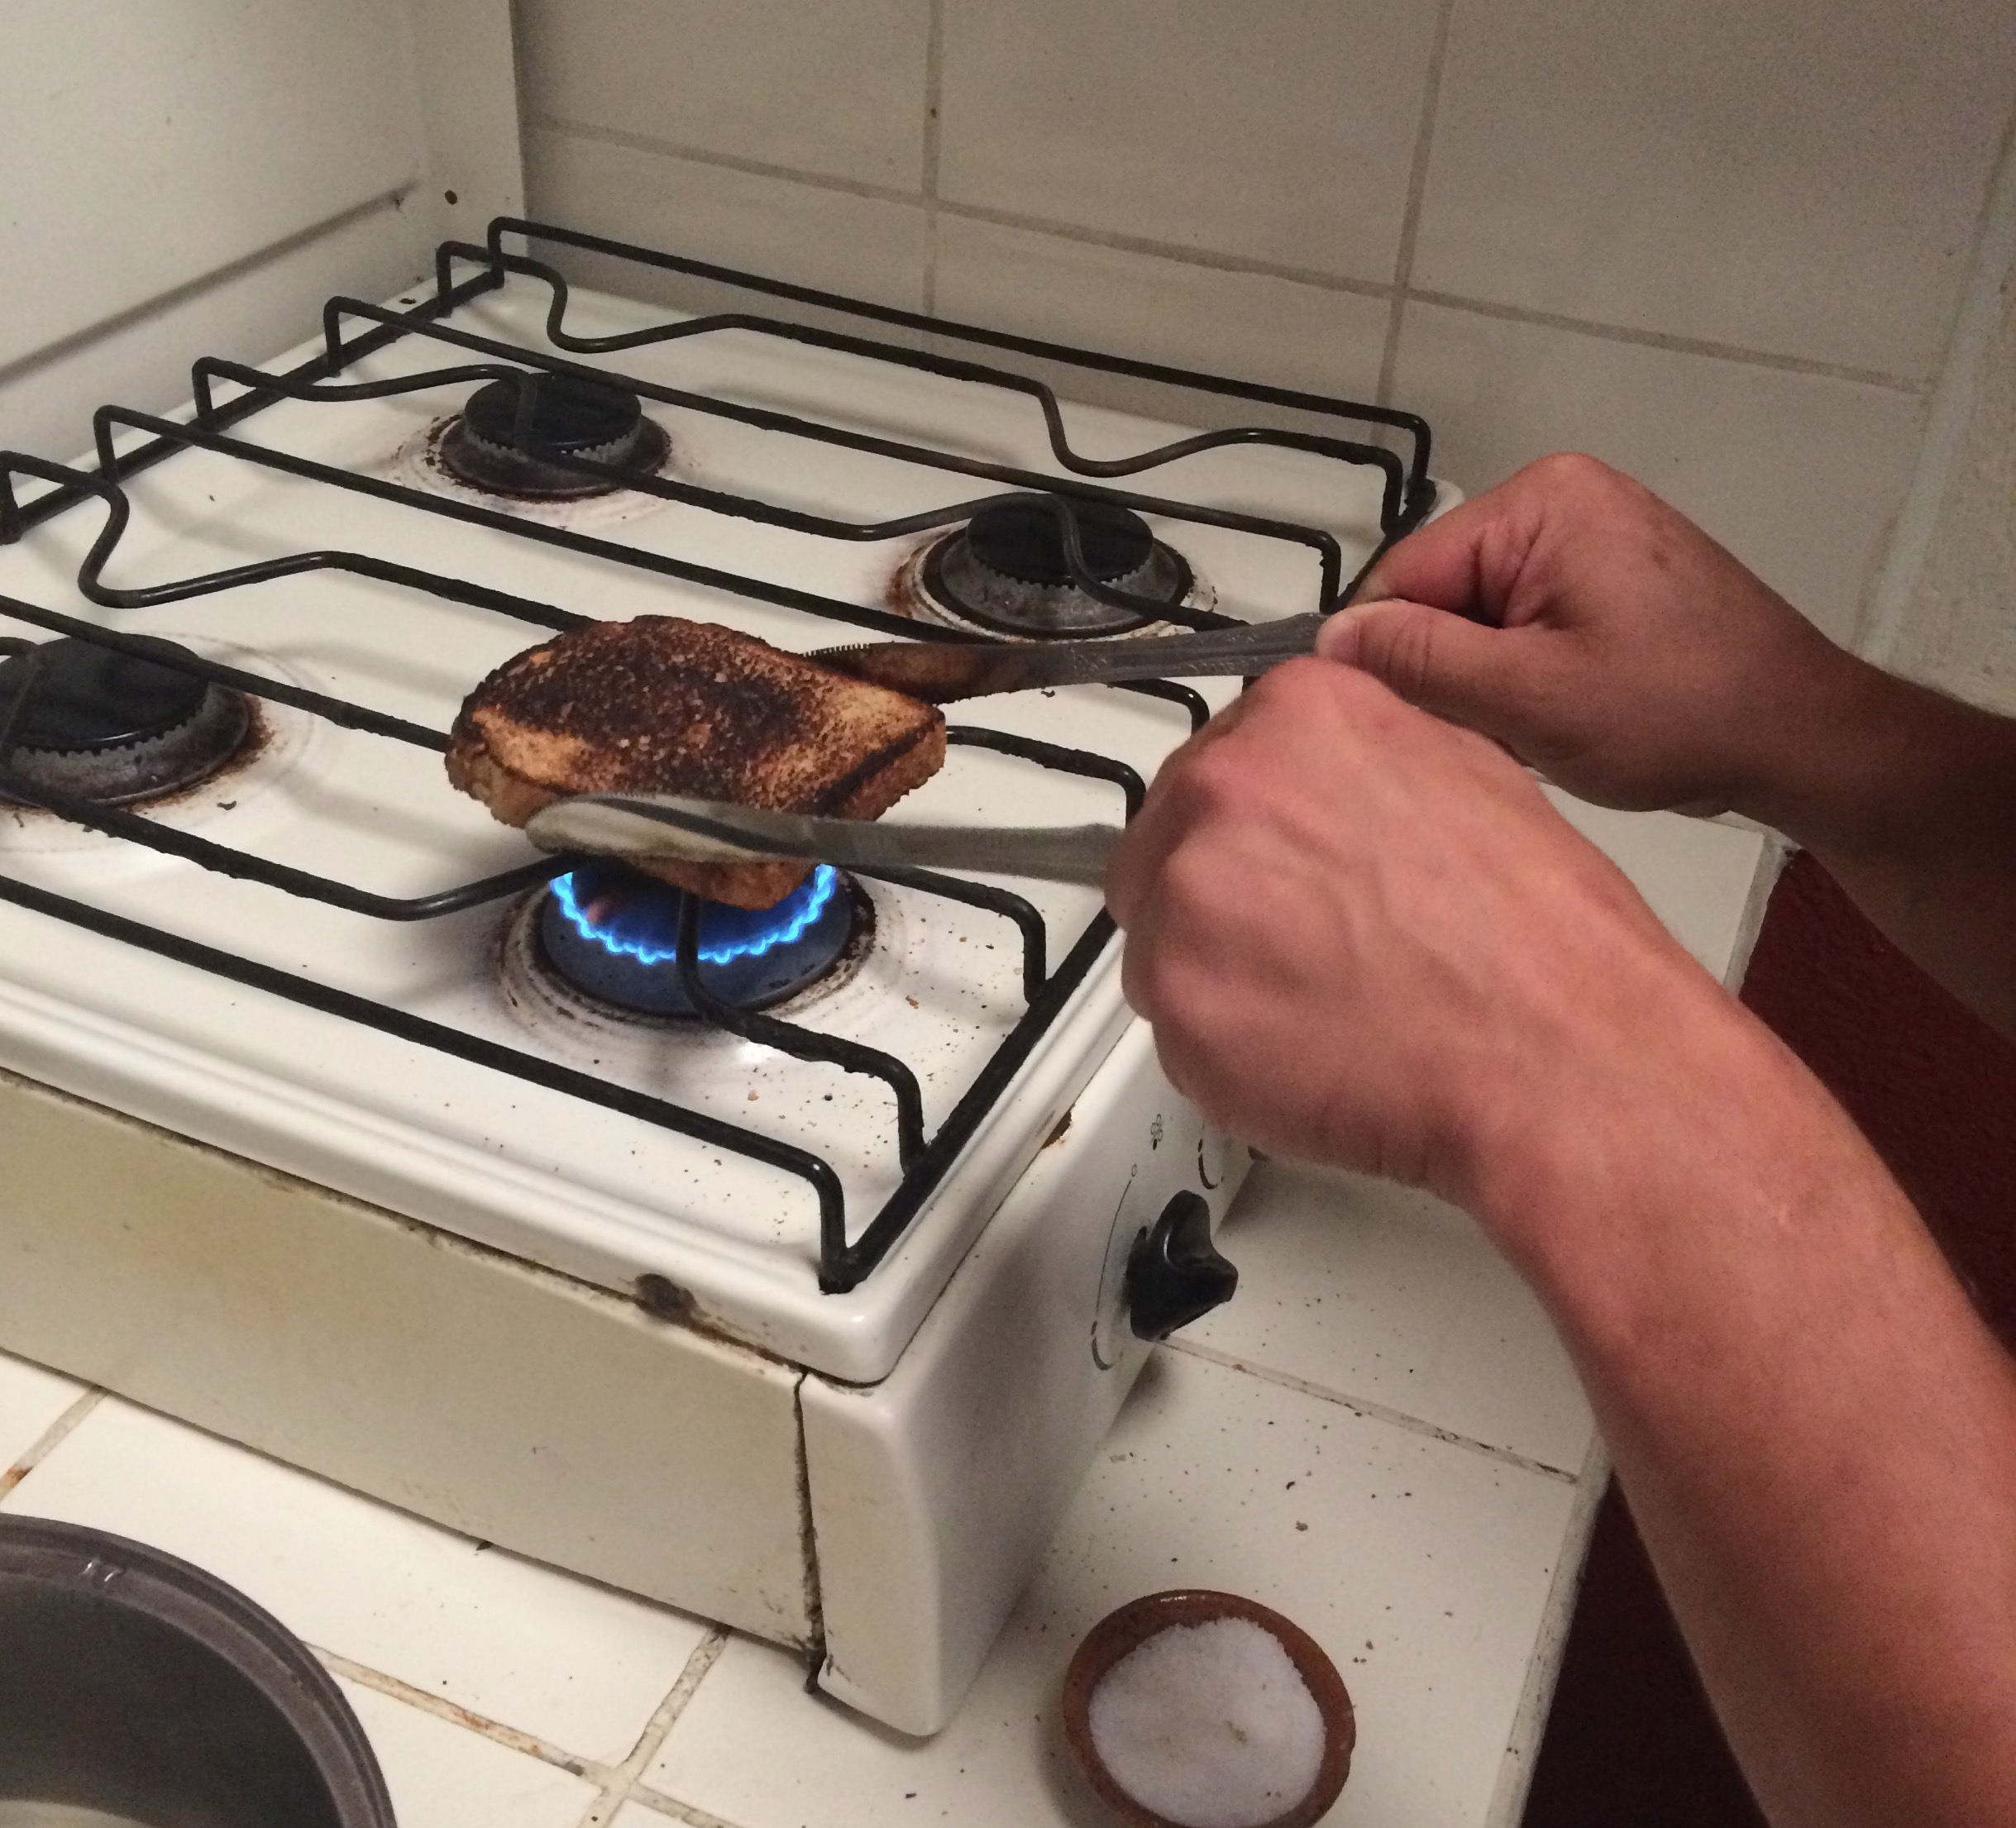 Hostel kitchens are very basic, often with no toaster or microwave.  An example of our MacGyver cooking at its finest.